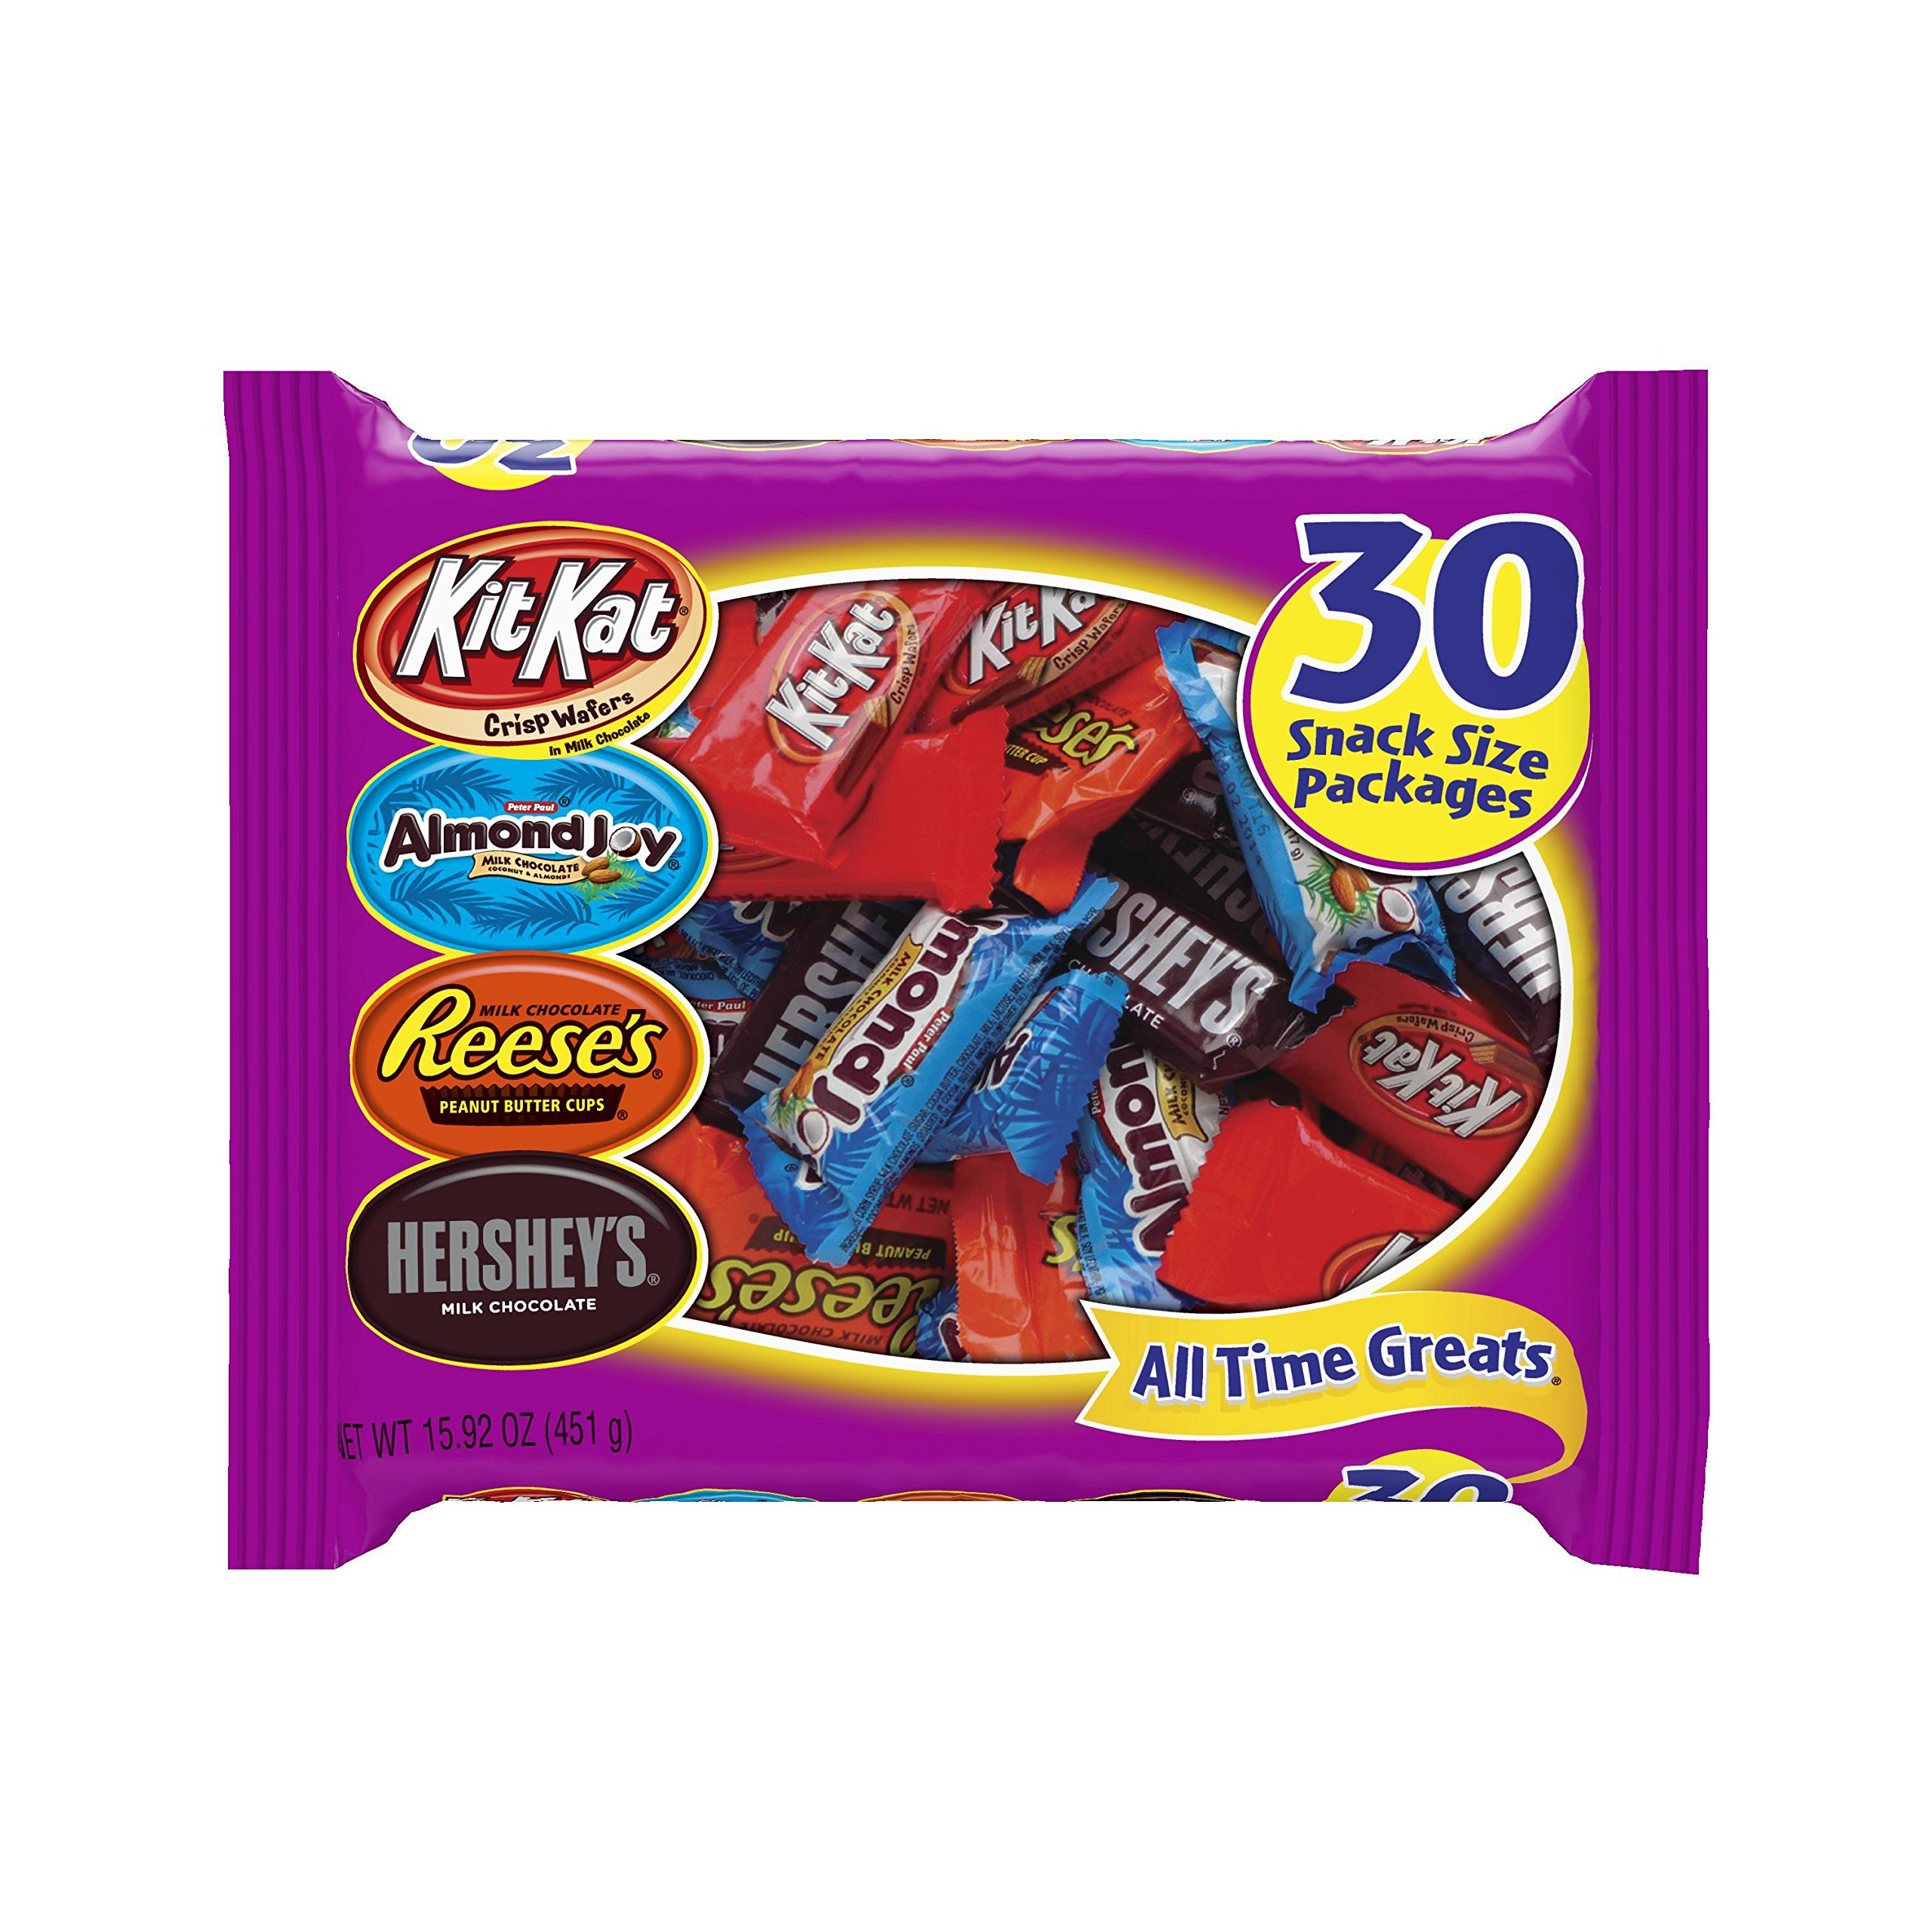 HERSHEY'S Chocolate Candy Assortment (Hershey's, Reese's, Almond Joy, Kit Kat), Snack Size, 30 Count